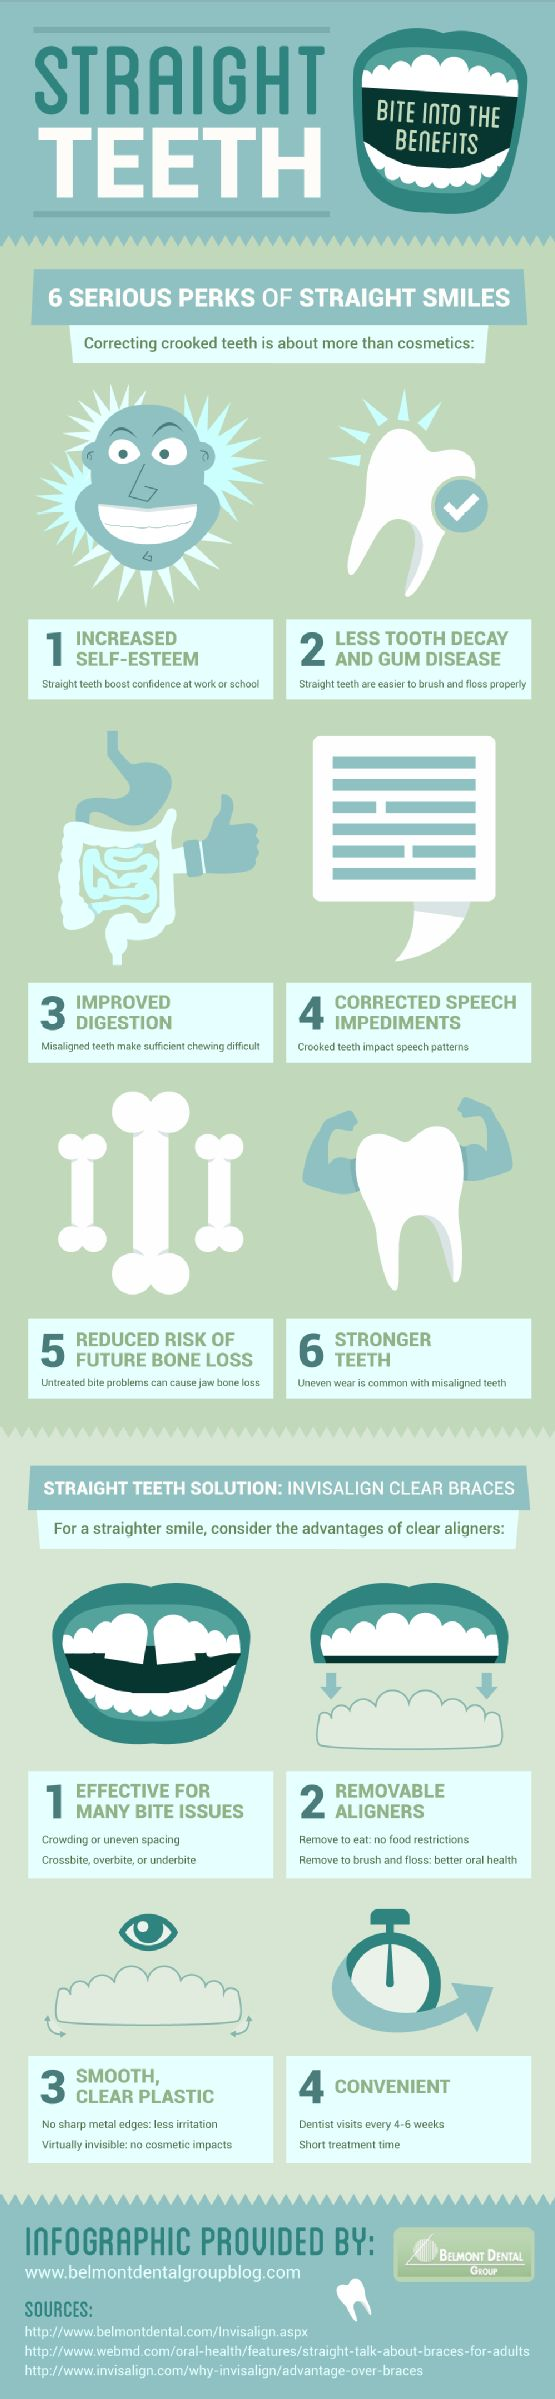 Did You Know That Patients Who Wear Invisalign Can Remove Their Aligners To  Eat And Clean